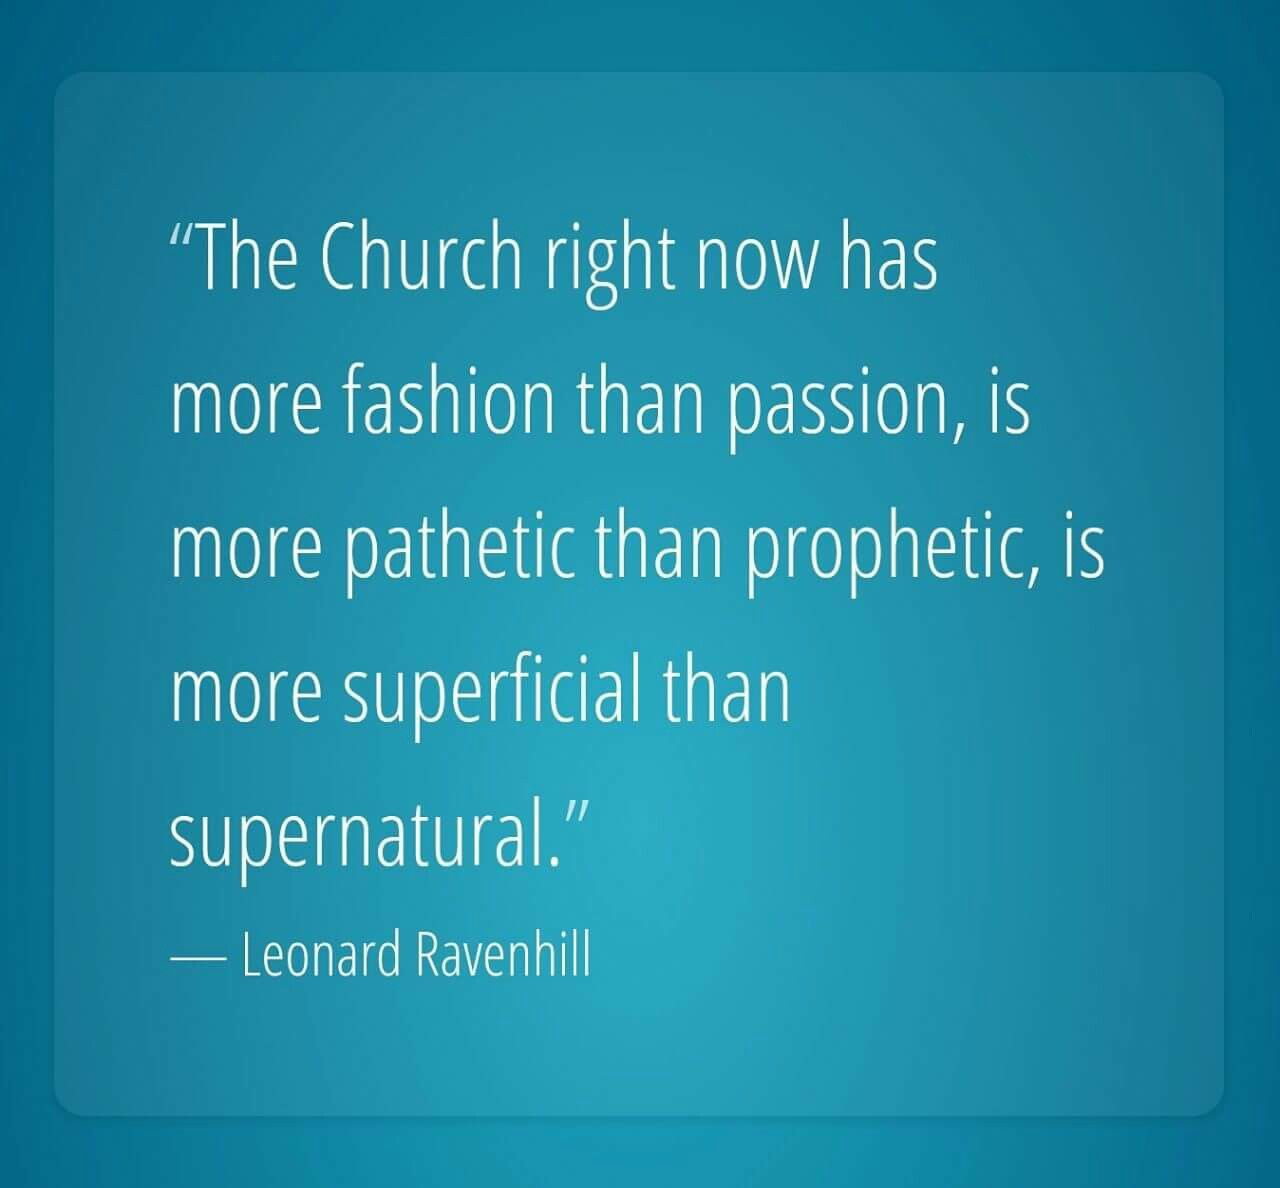 Christian Quotes Leonard Ravenhill Quotes Church Reformed